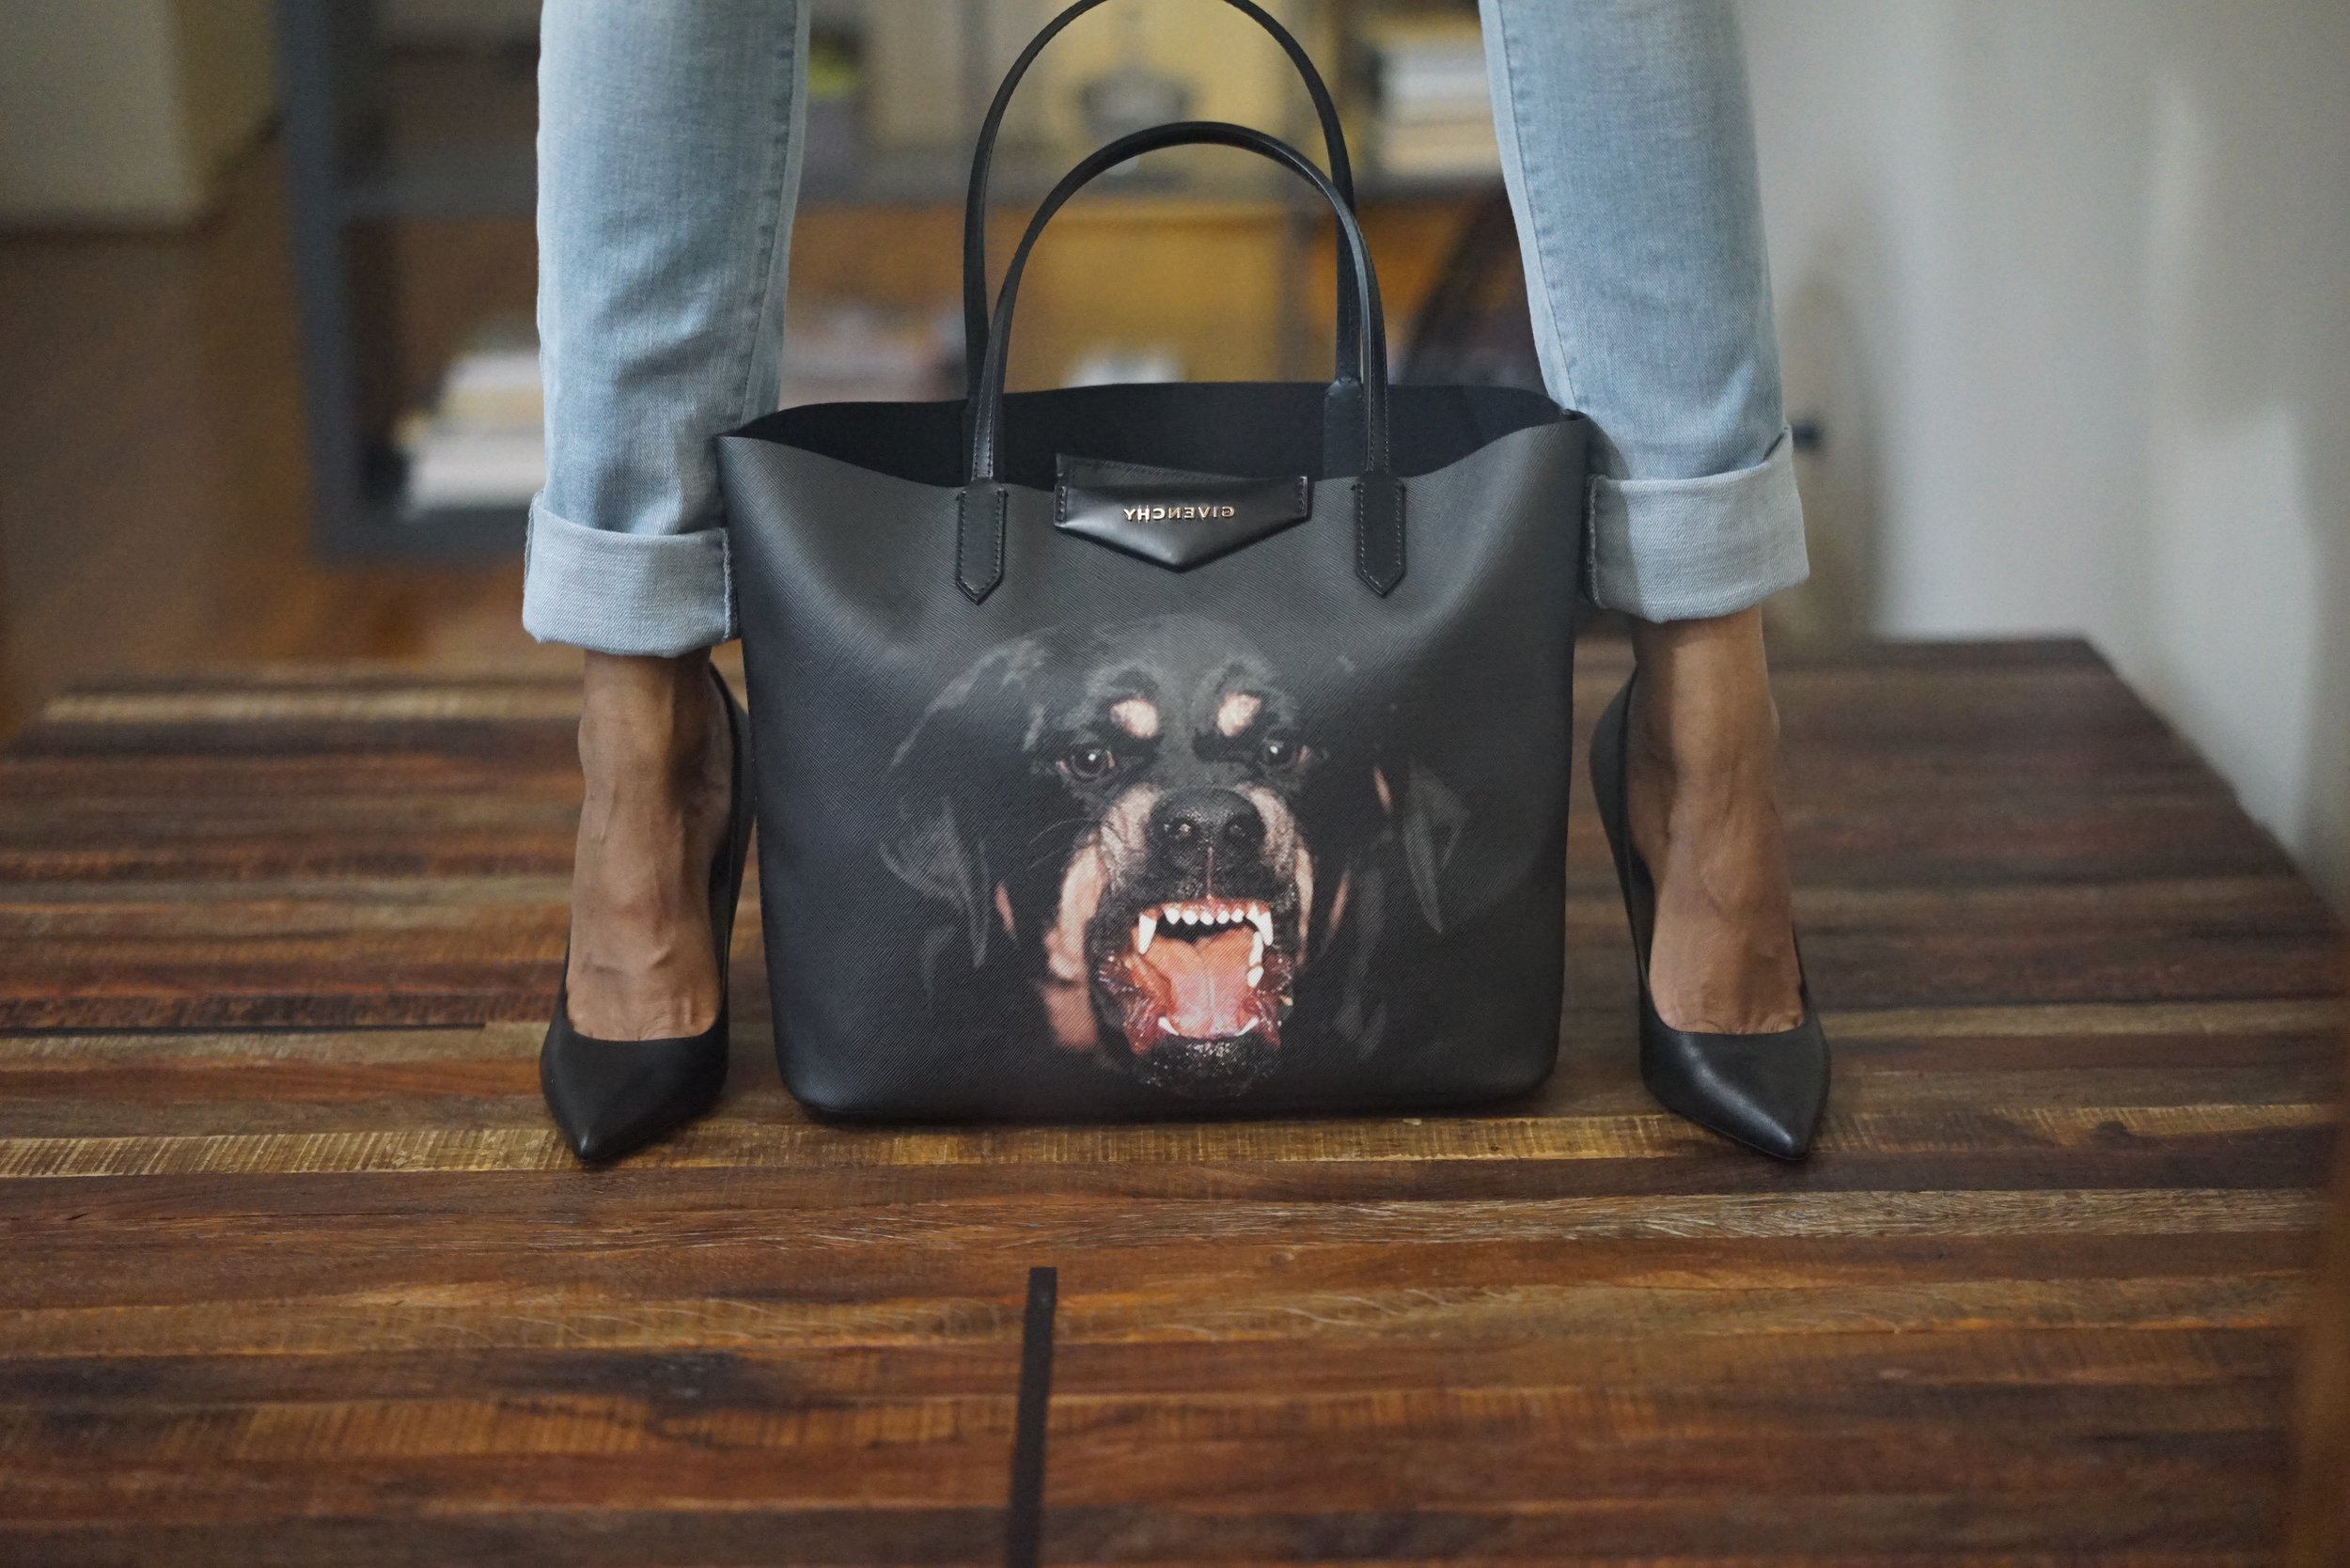 Christine_the_style_d'affaire_givenchy_tote_bag_mood.jpg